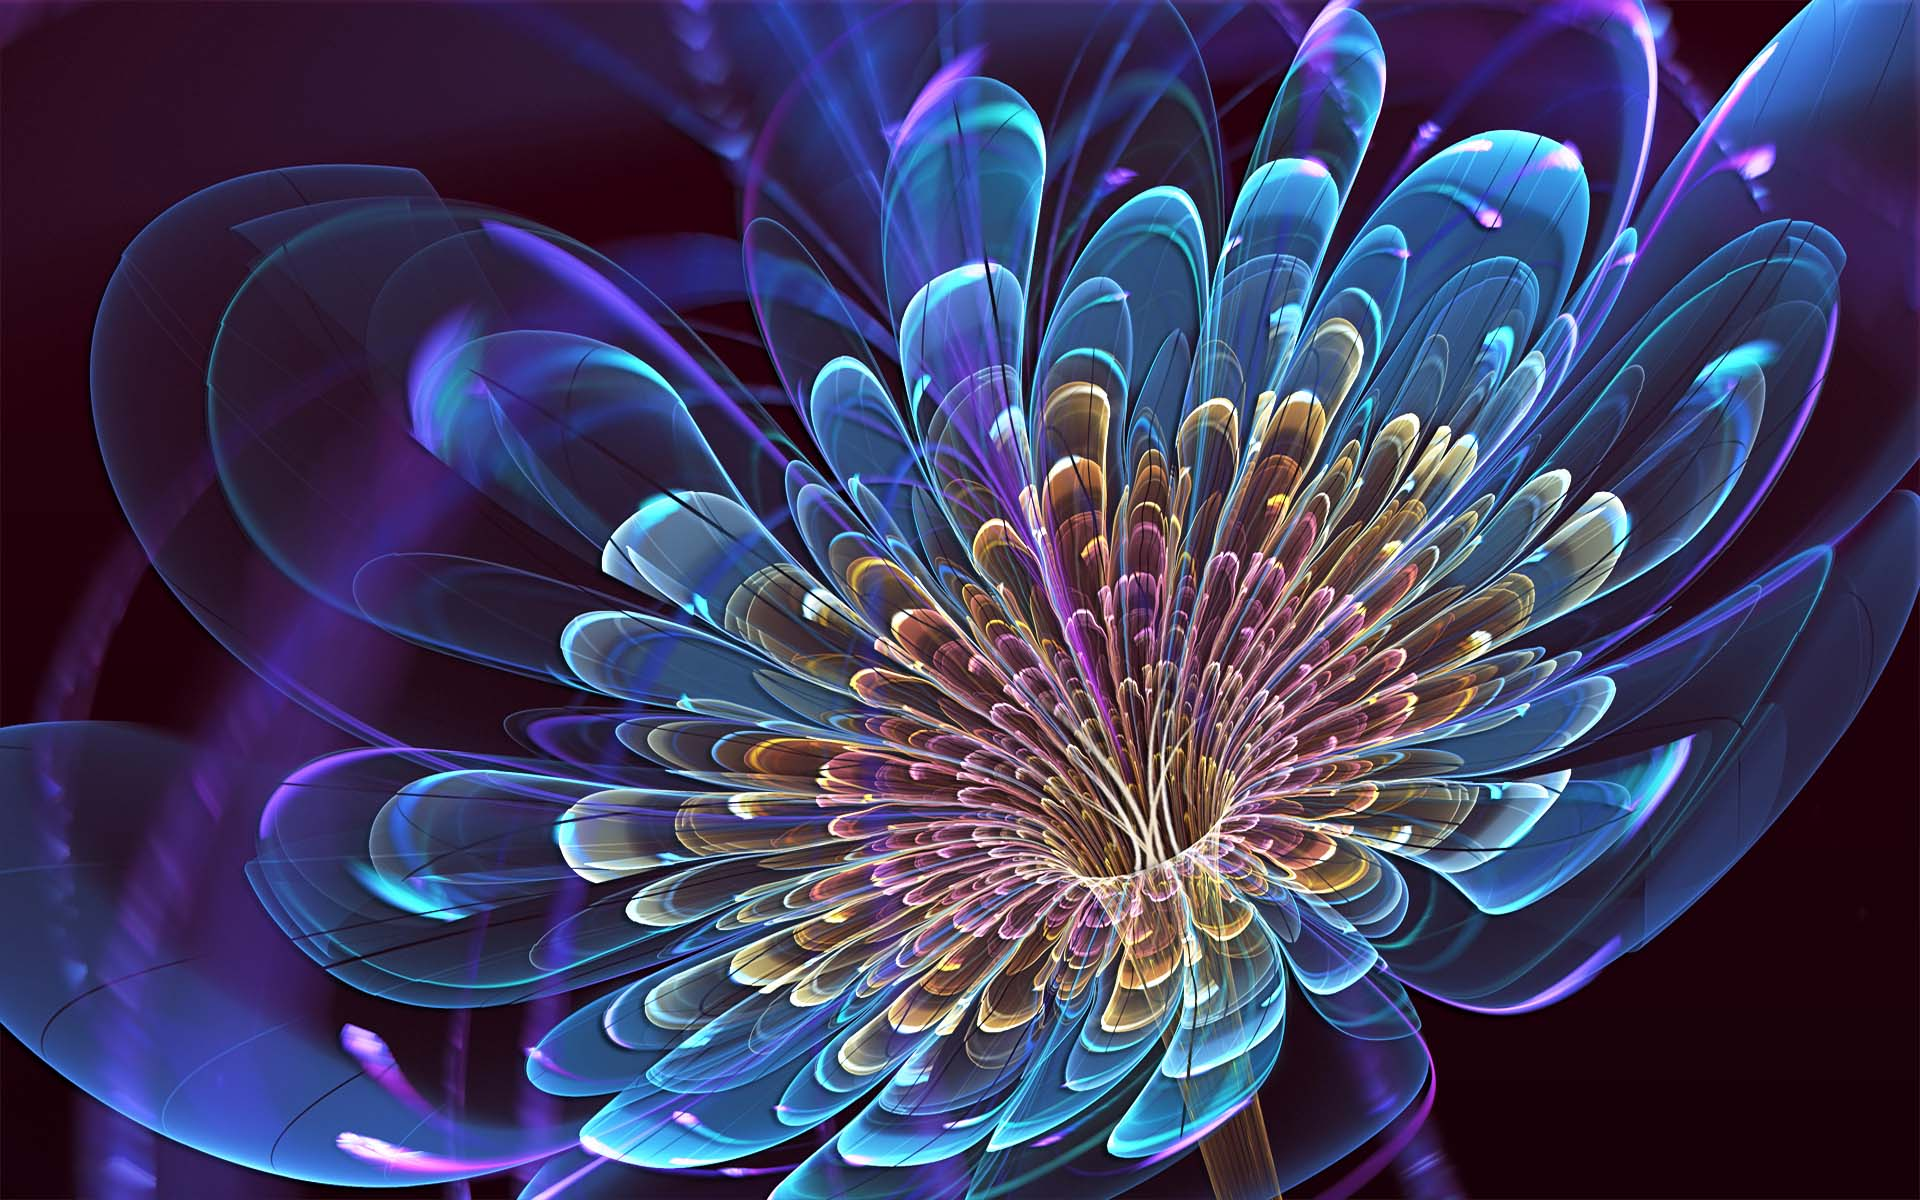 Abstract Flower Wallpaper Download Free Wallpaper Wiki